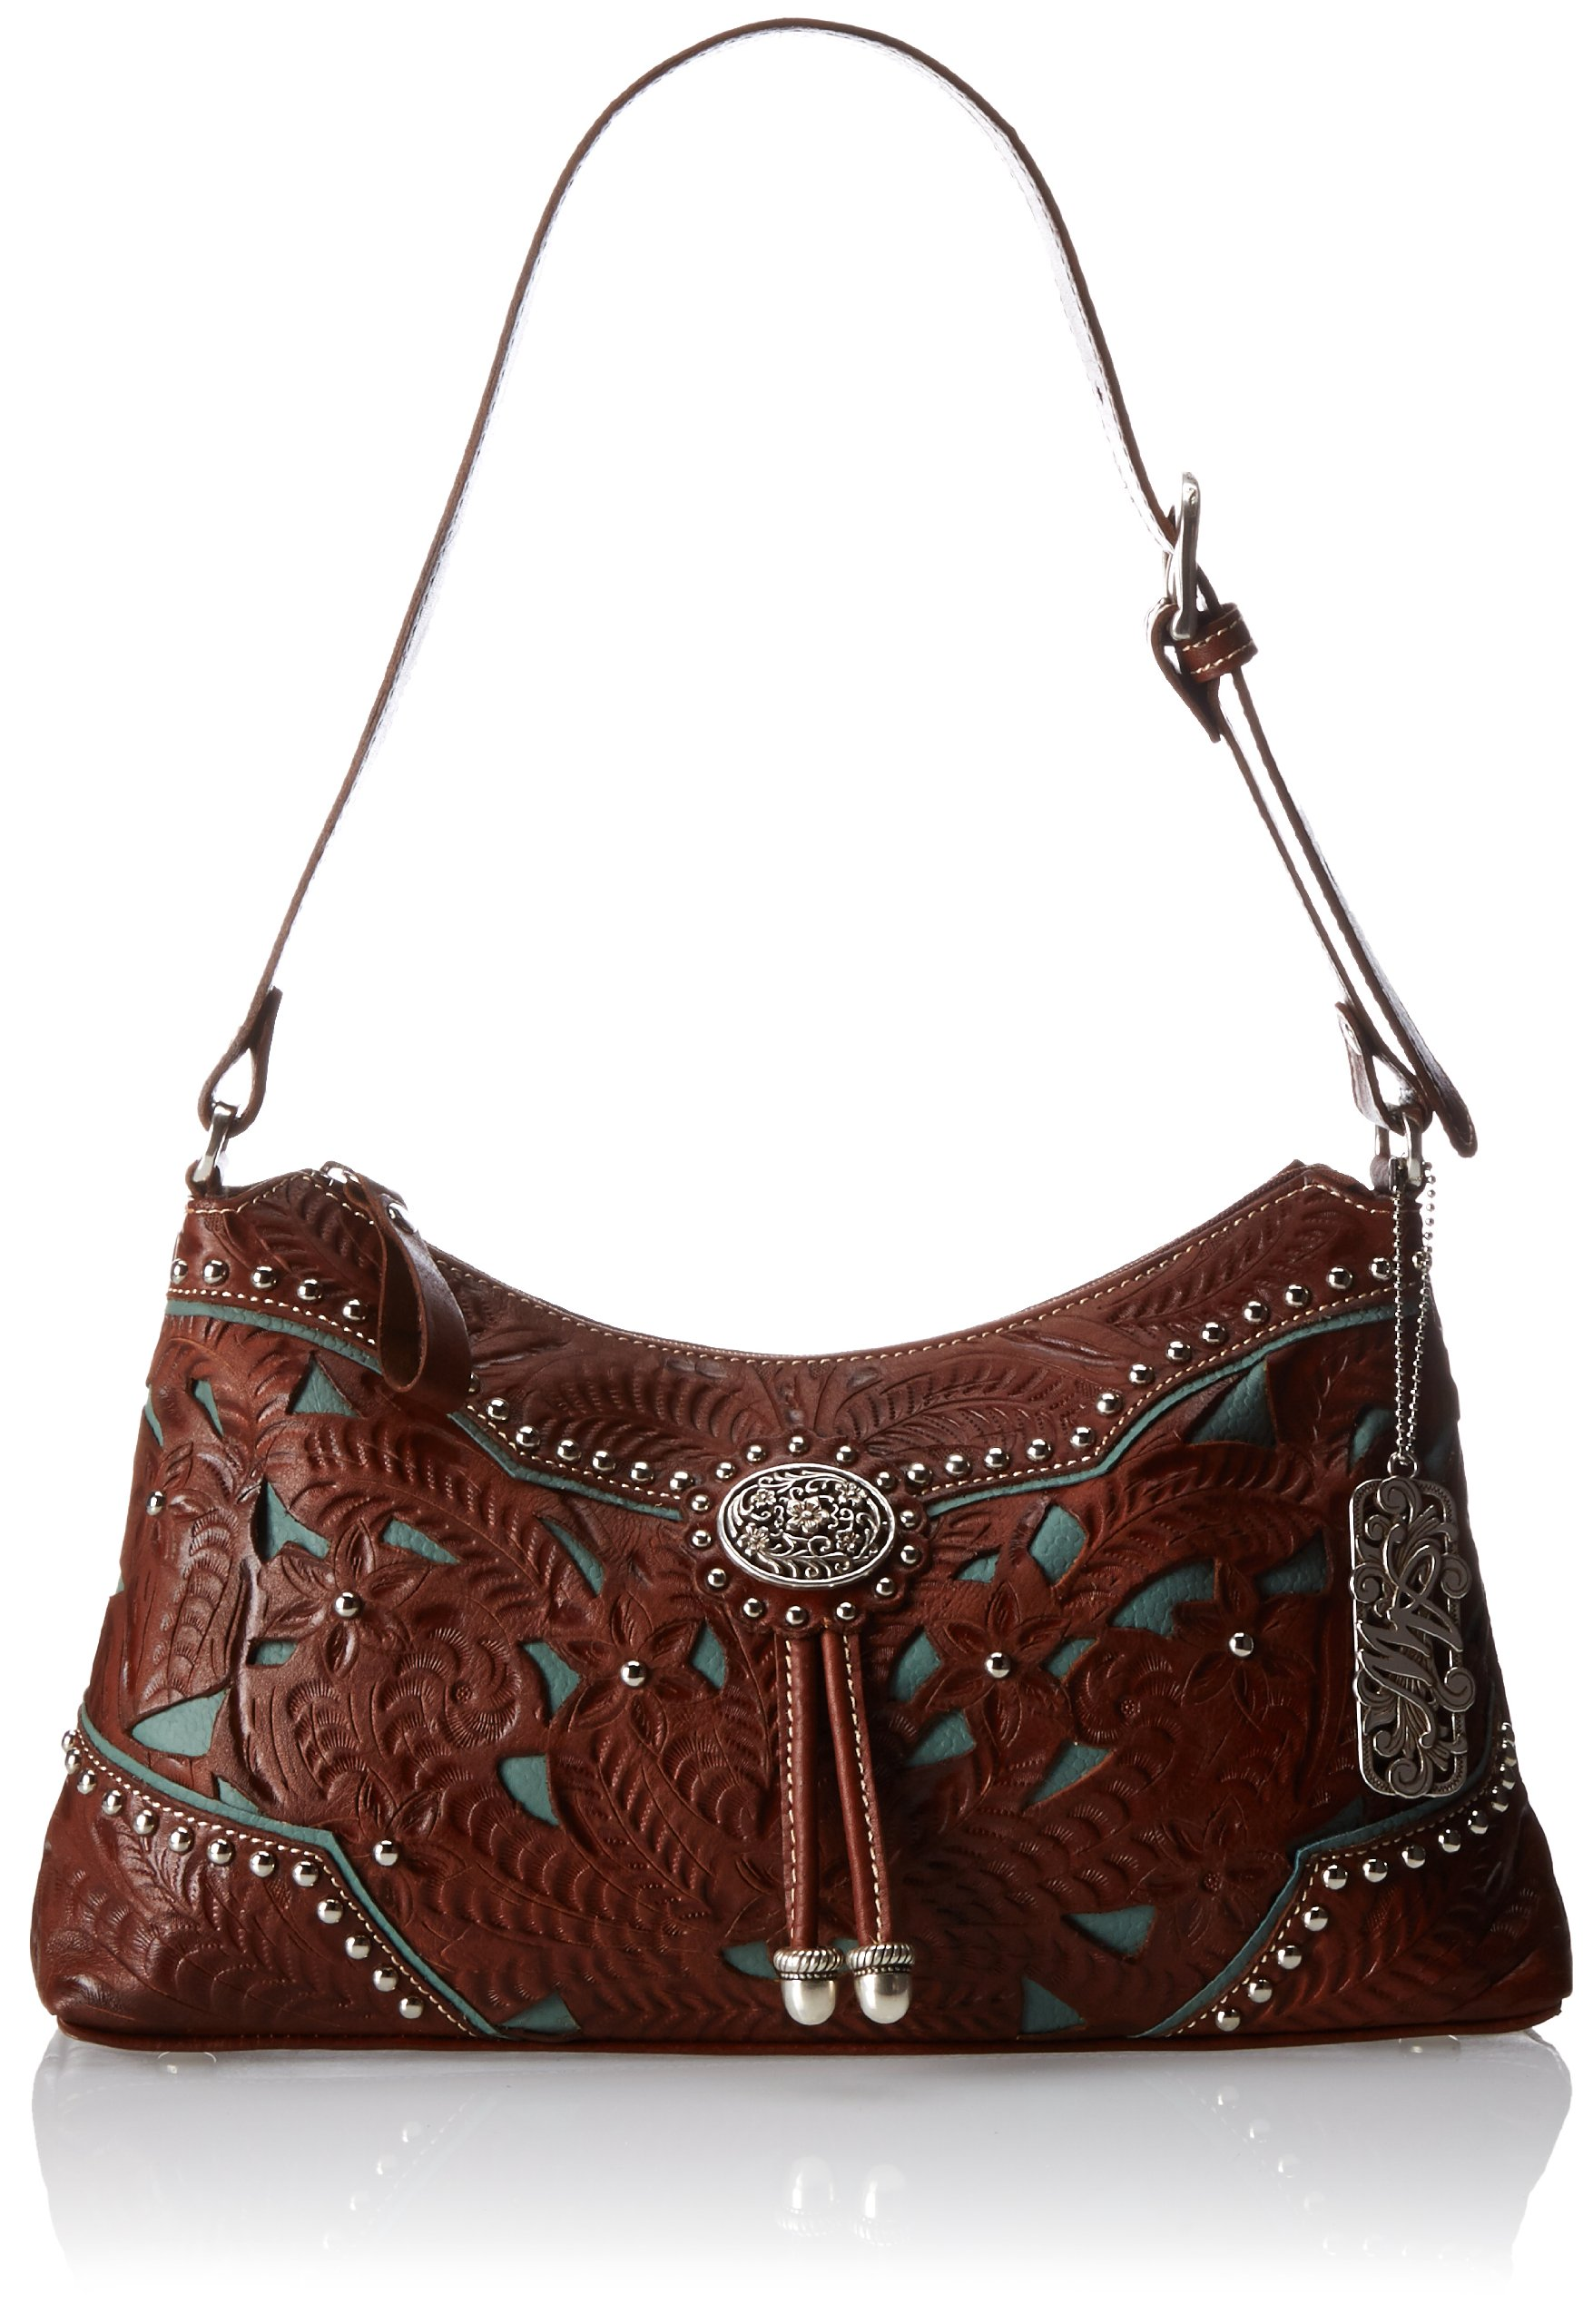 American West Lady Lace Zip-Top Shoulder Bag,Antique Brown/Turquoise,One Size